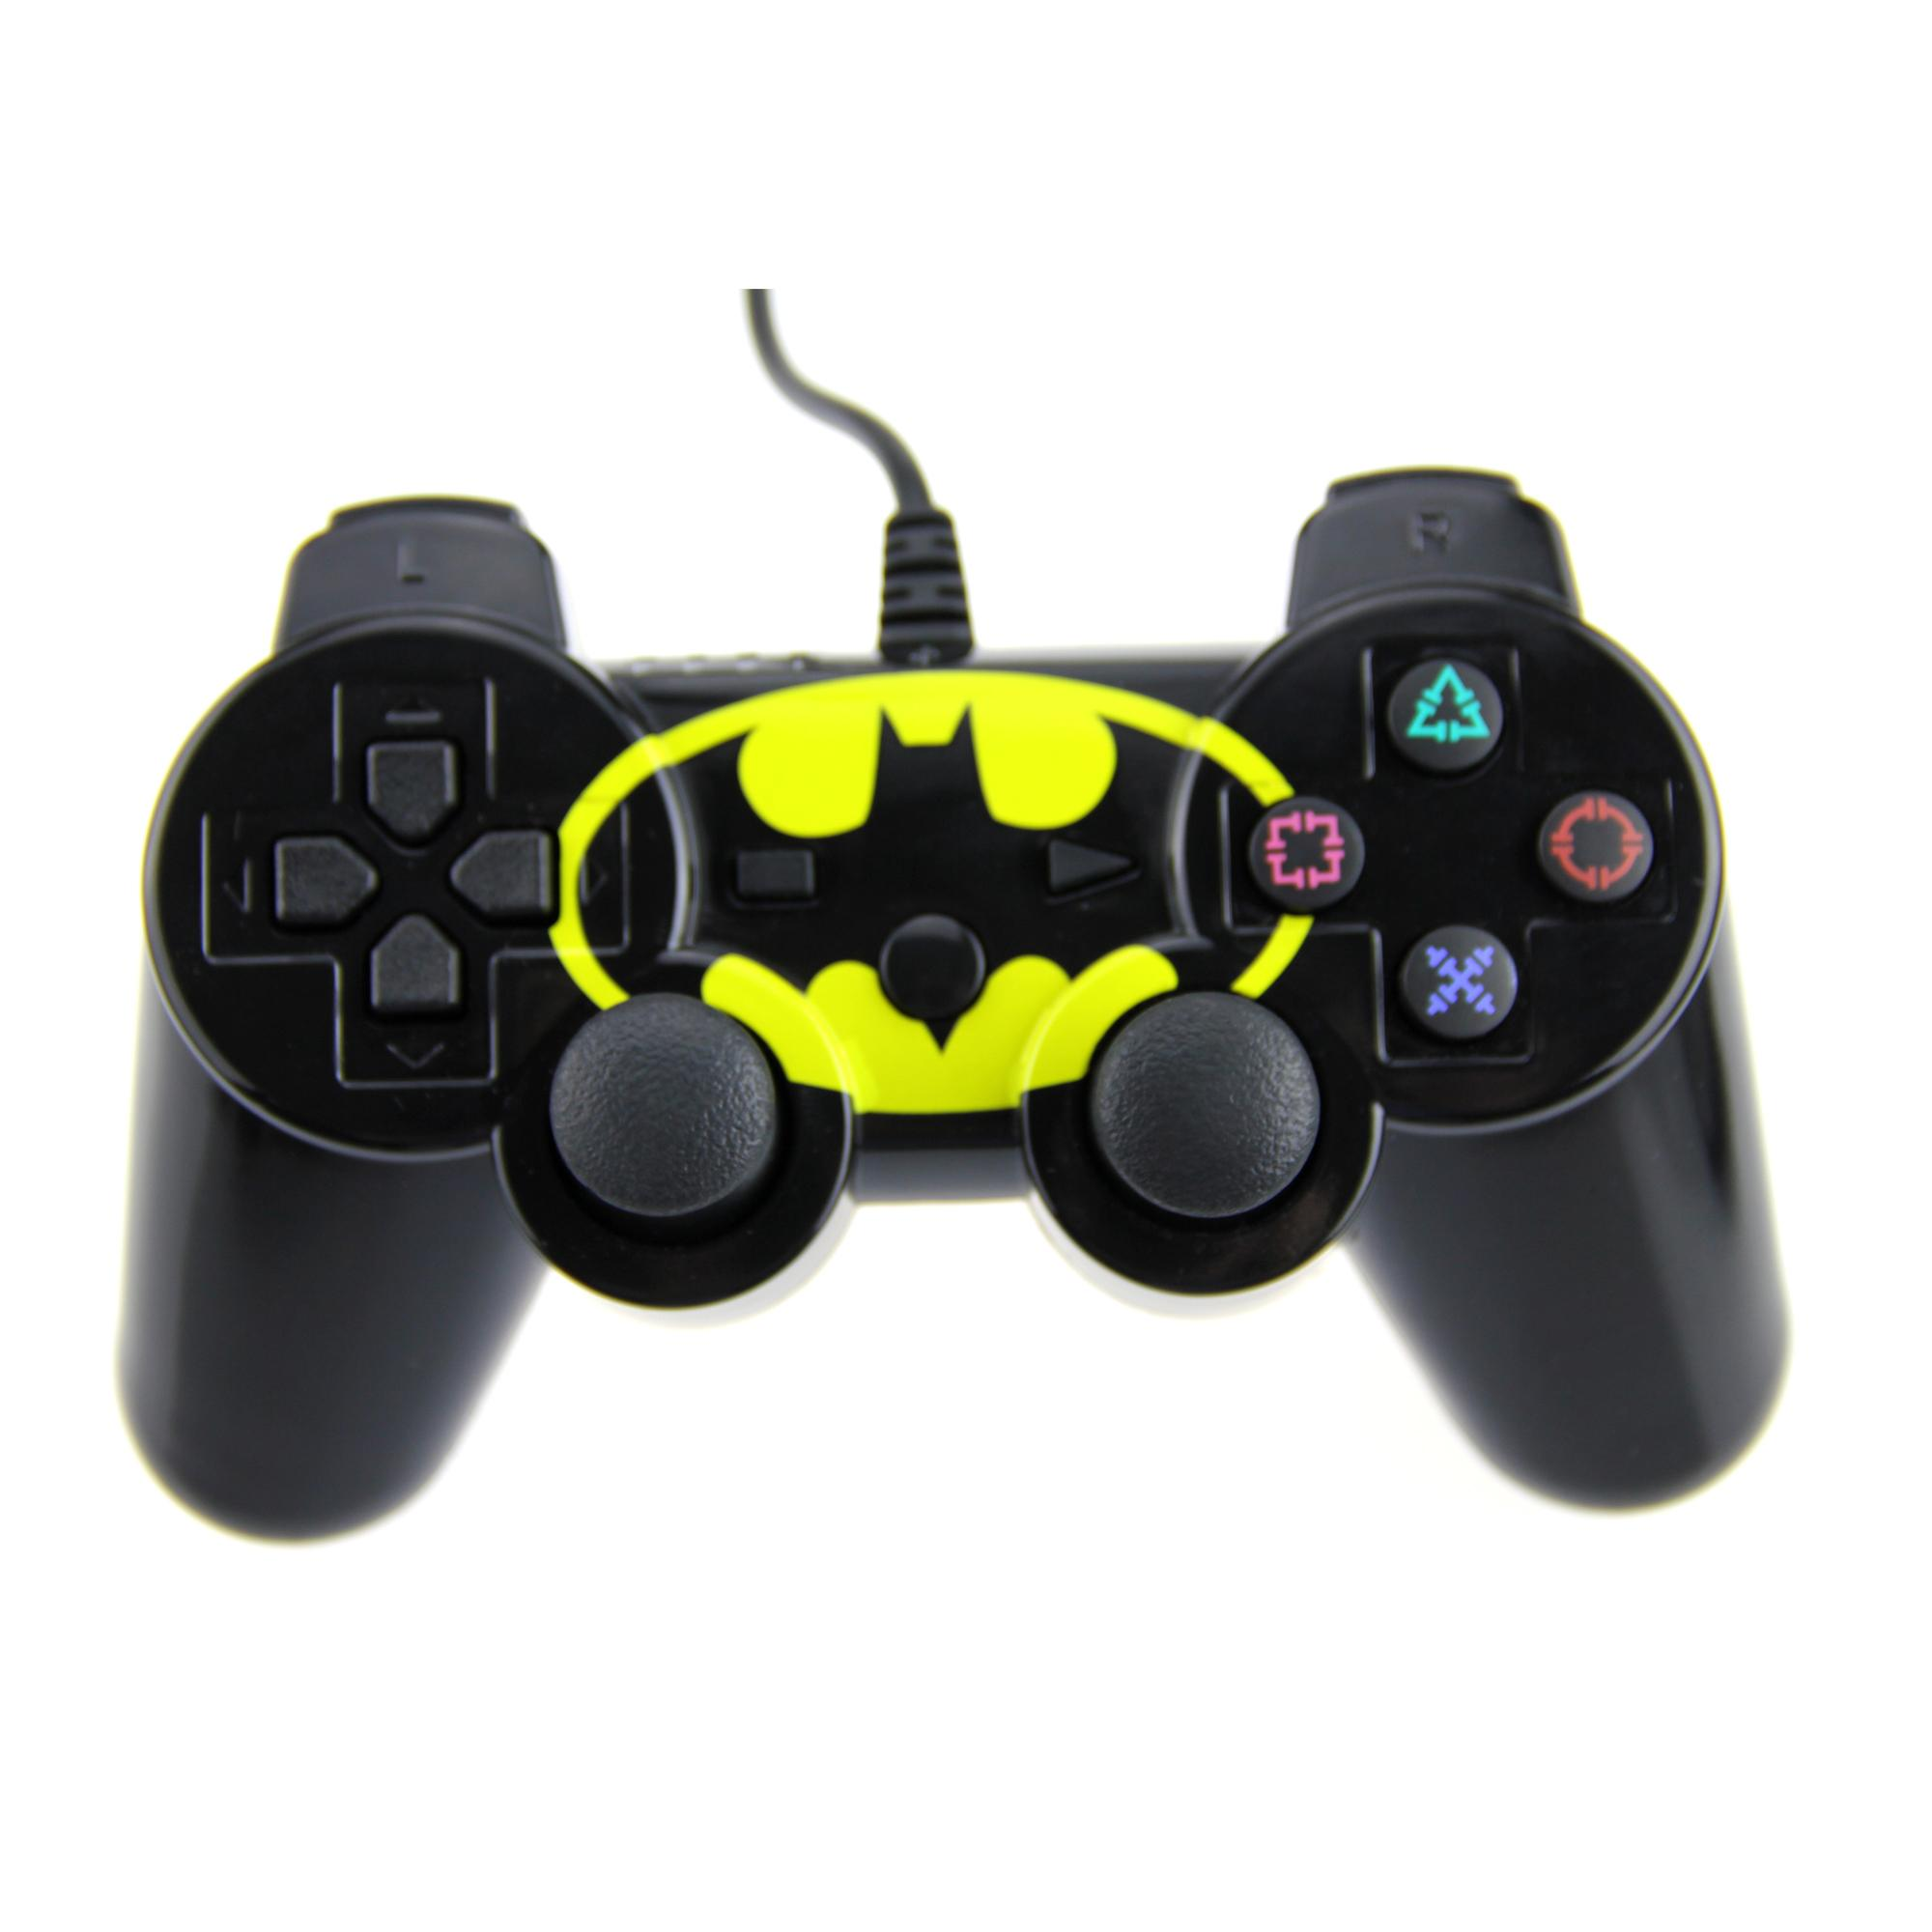 ... Wired Ps3 Controller Unique Design Dual Vibration Joystick Joypad  Gamepad For Sony Playstation 3 Ps3 Controller